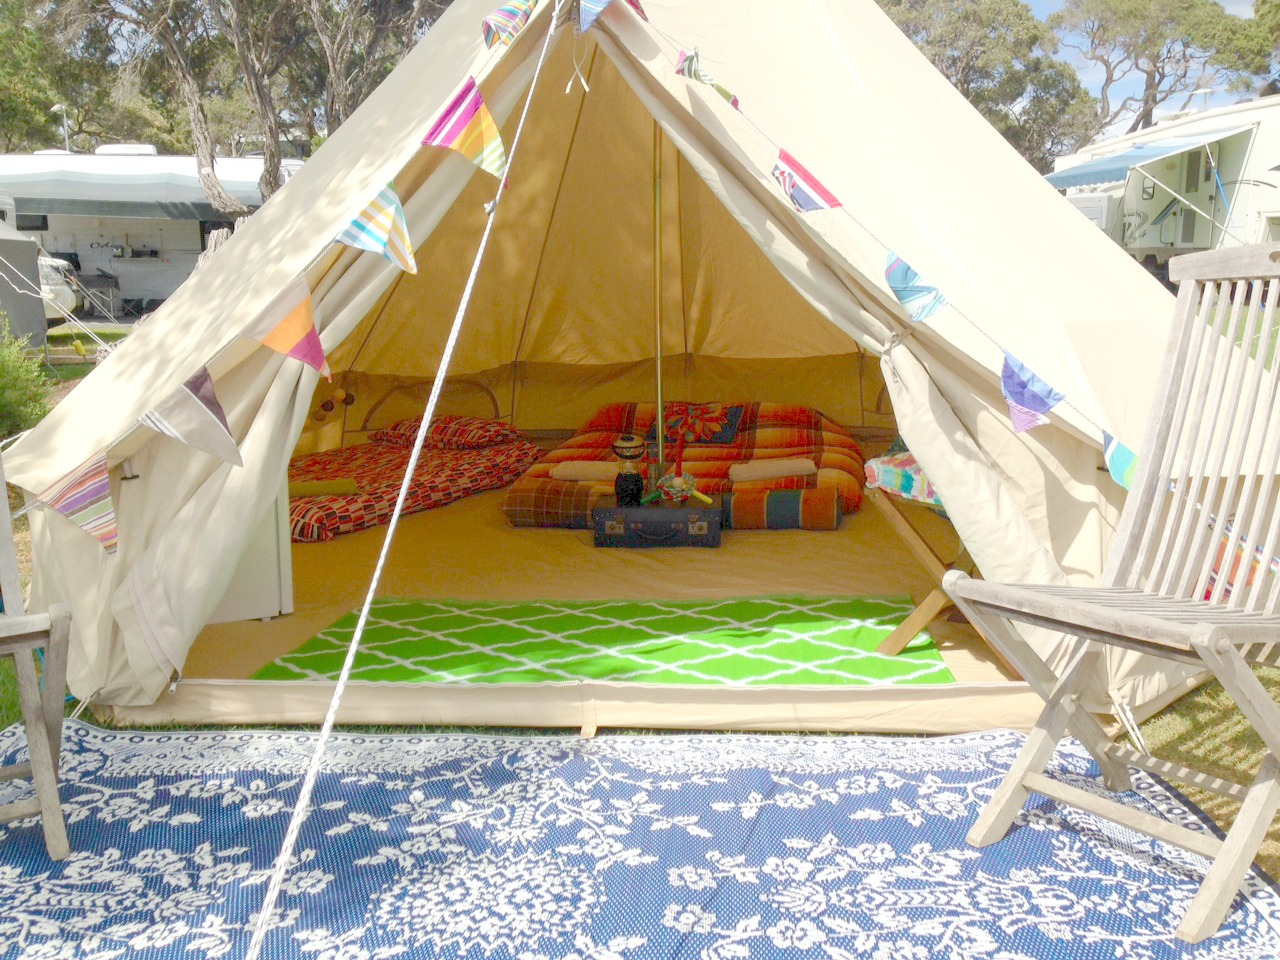 5m Bell Tents & Bell Tents gallery - Happy Glamper